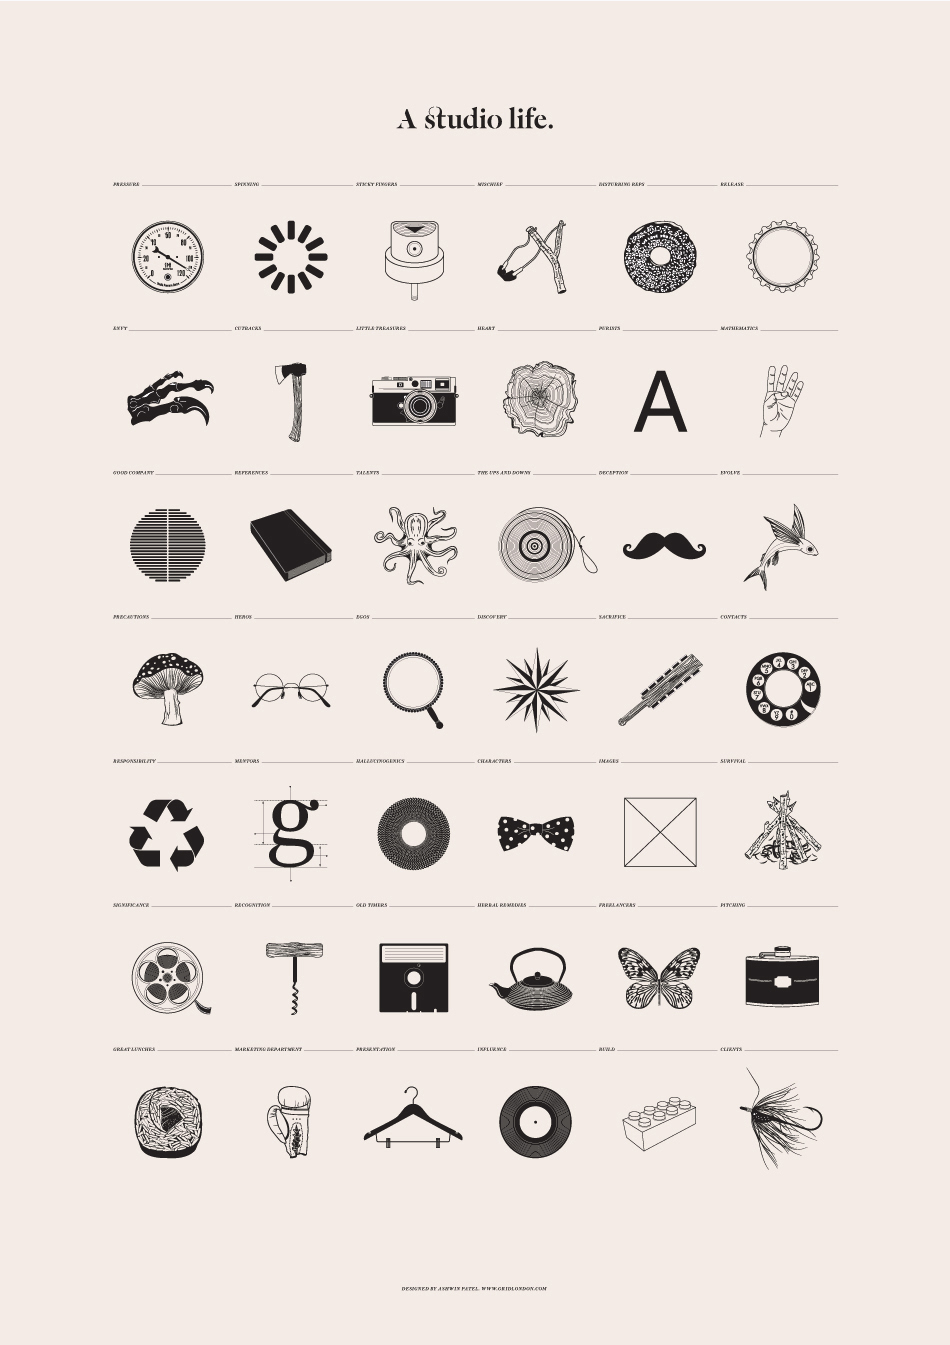 In minimalistic poster designer outlines the typical life of a design studio